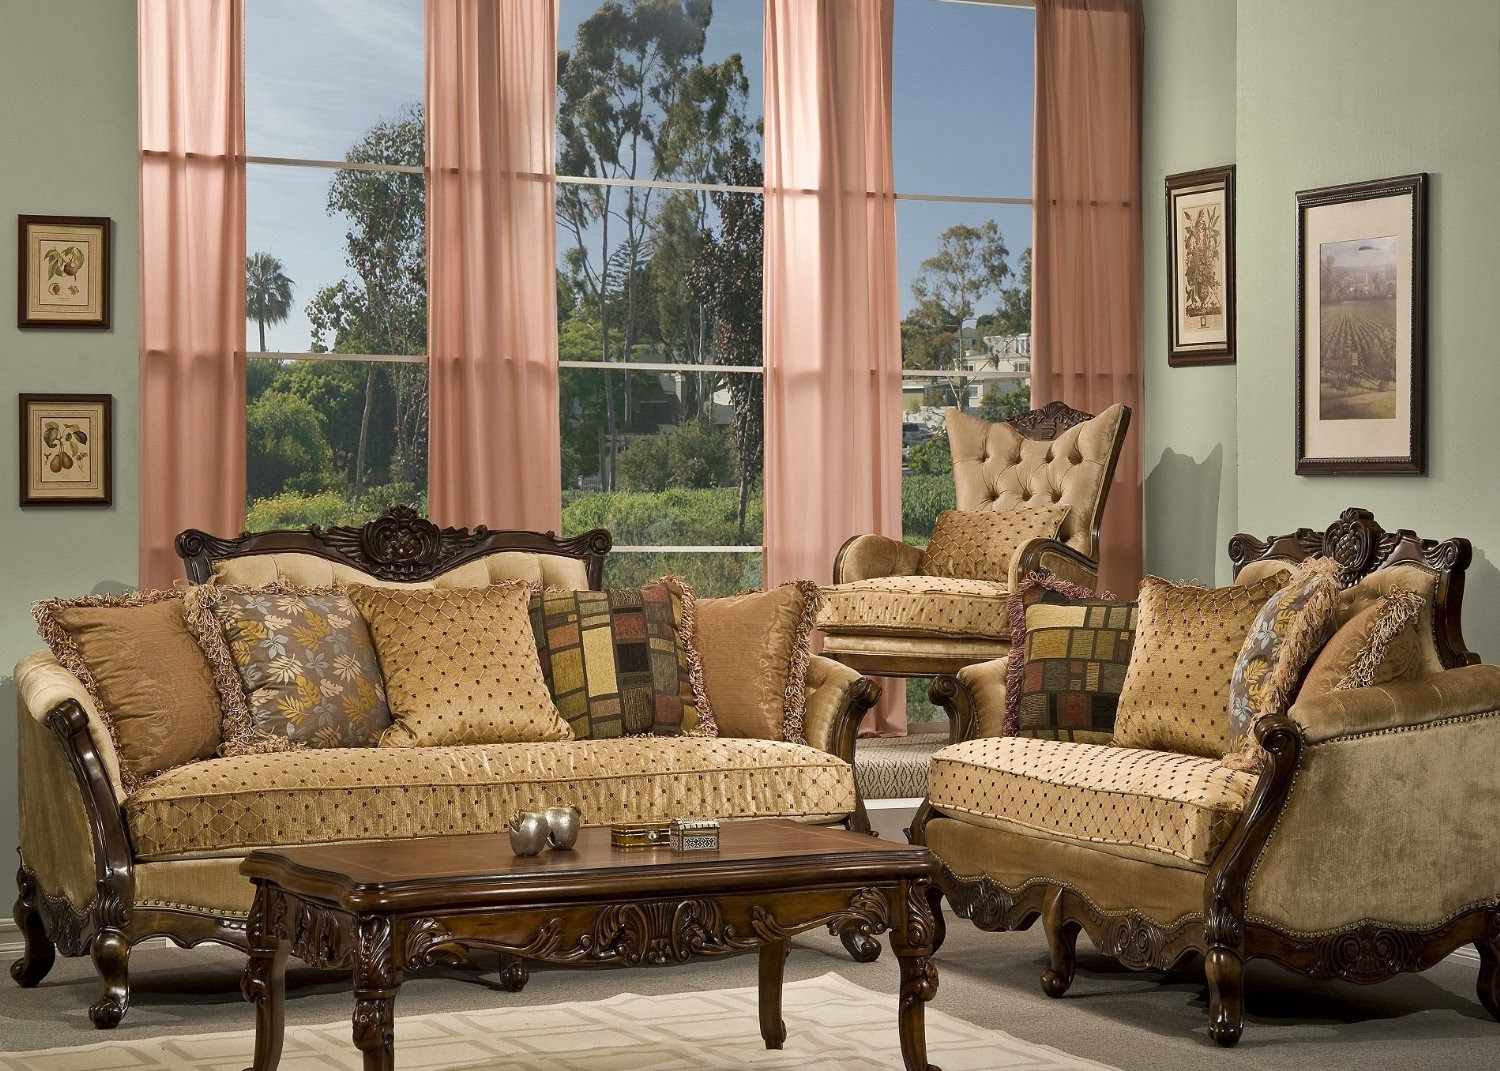 antique victorian sofa set victorian sofa set. Black Bedroom Furniture Sets. Home Design Ideas